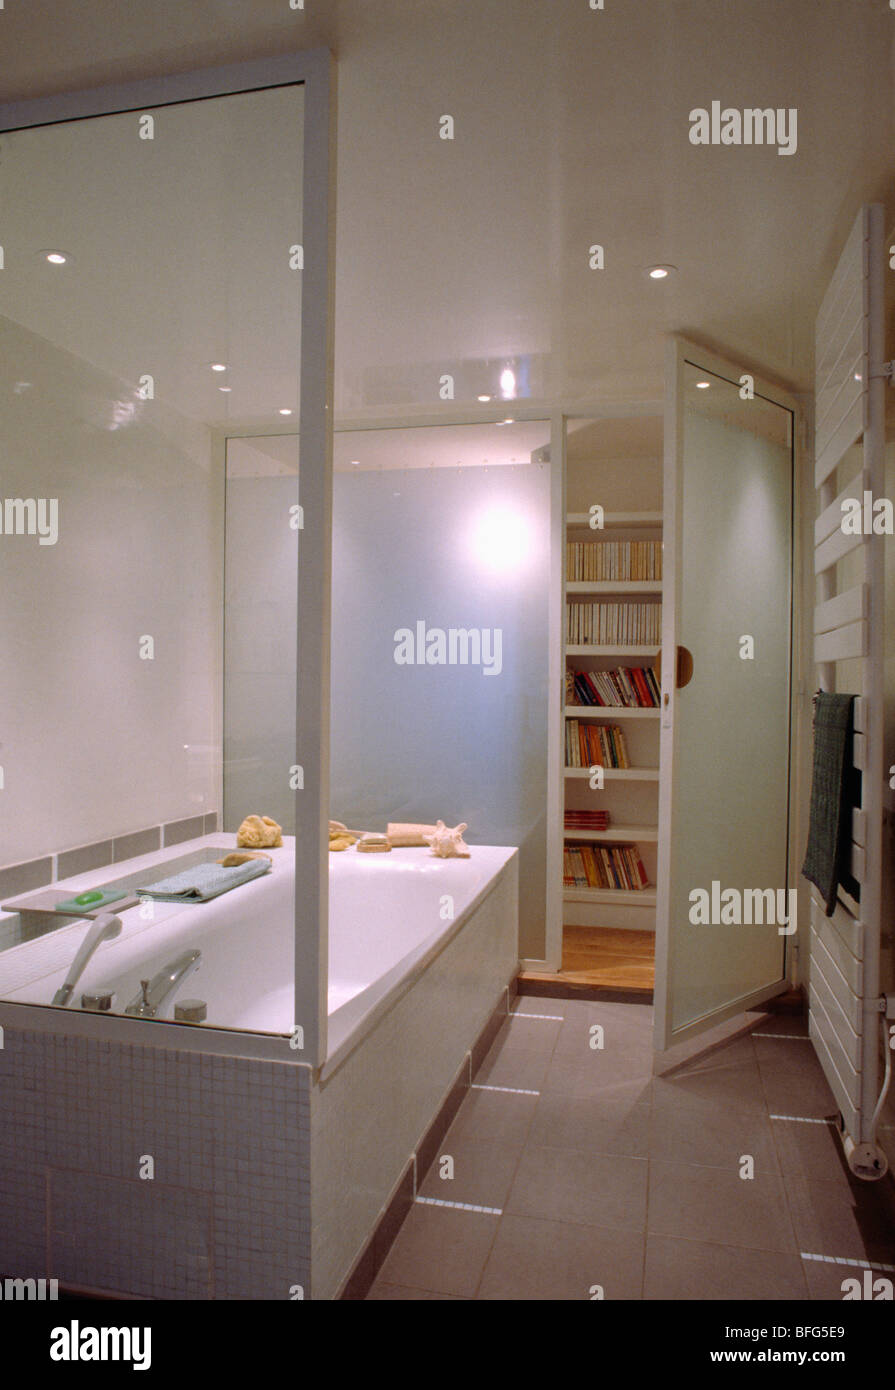 Modern white bathroom with recessed ceiling lights - Stock Image